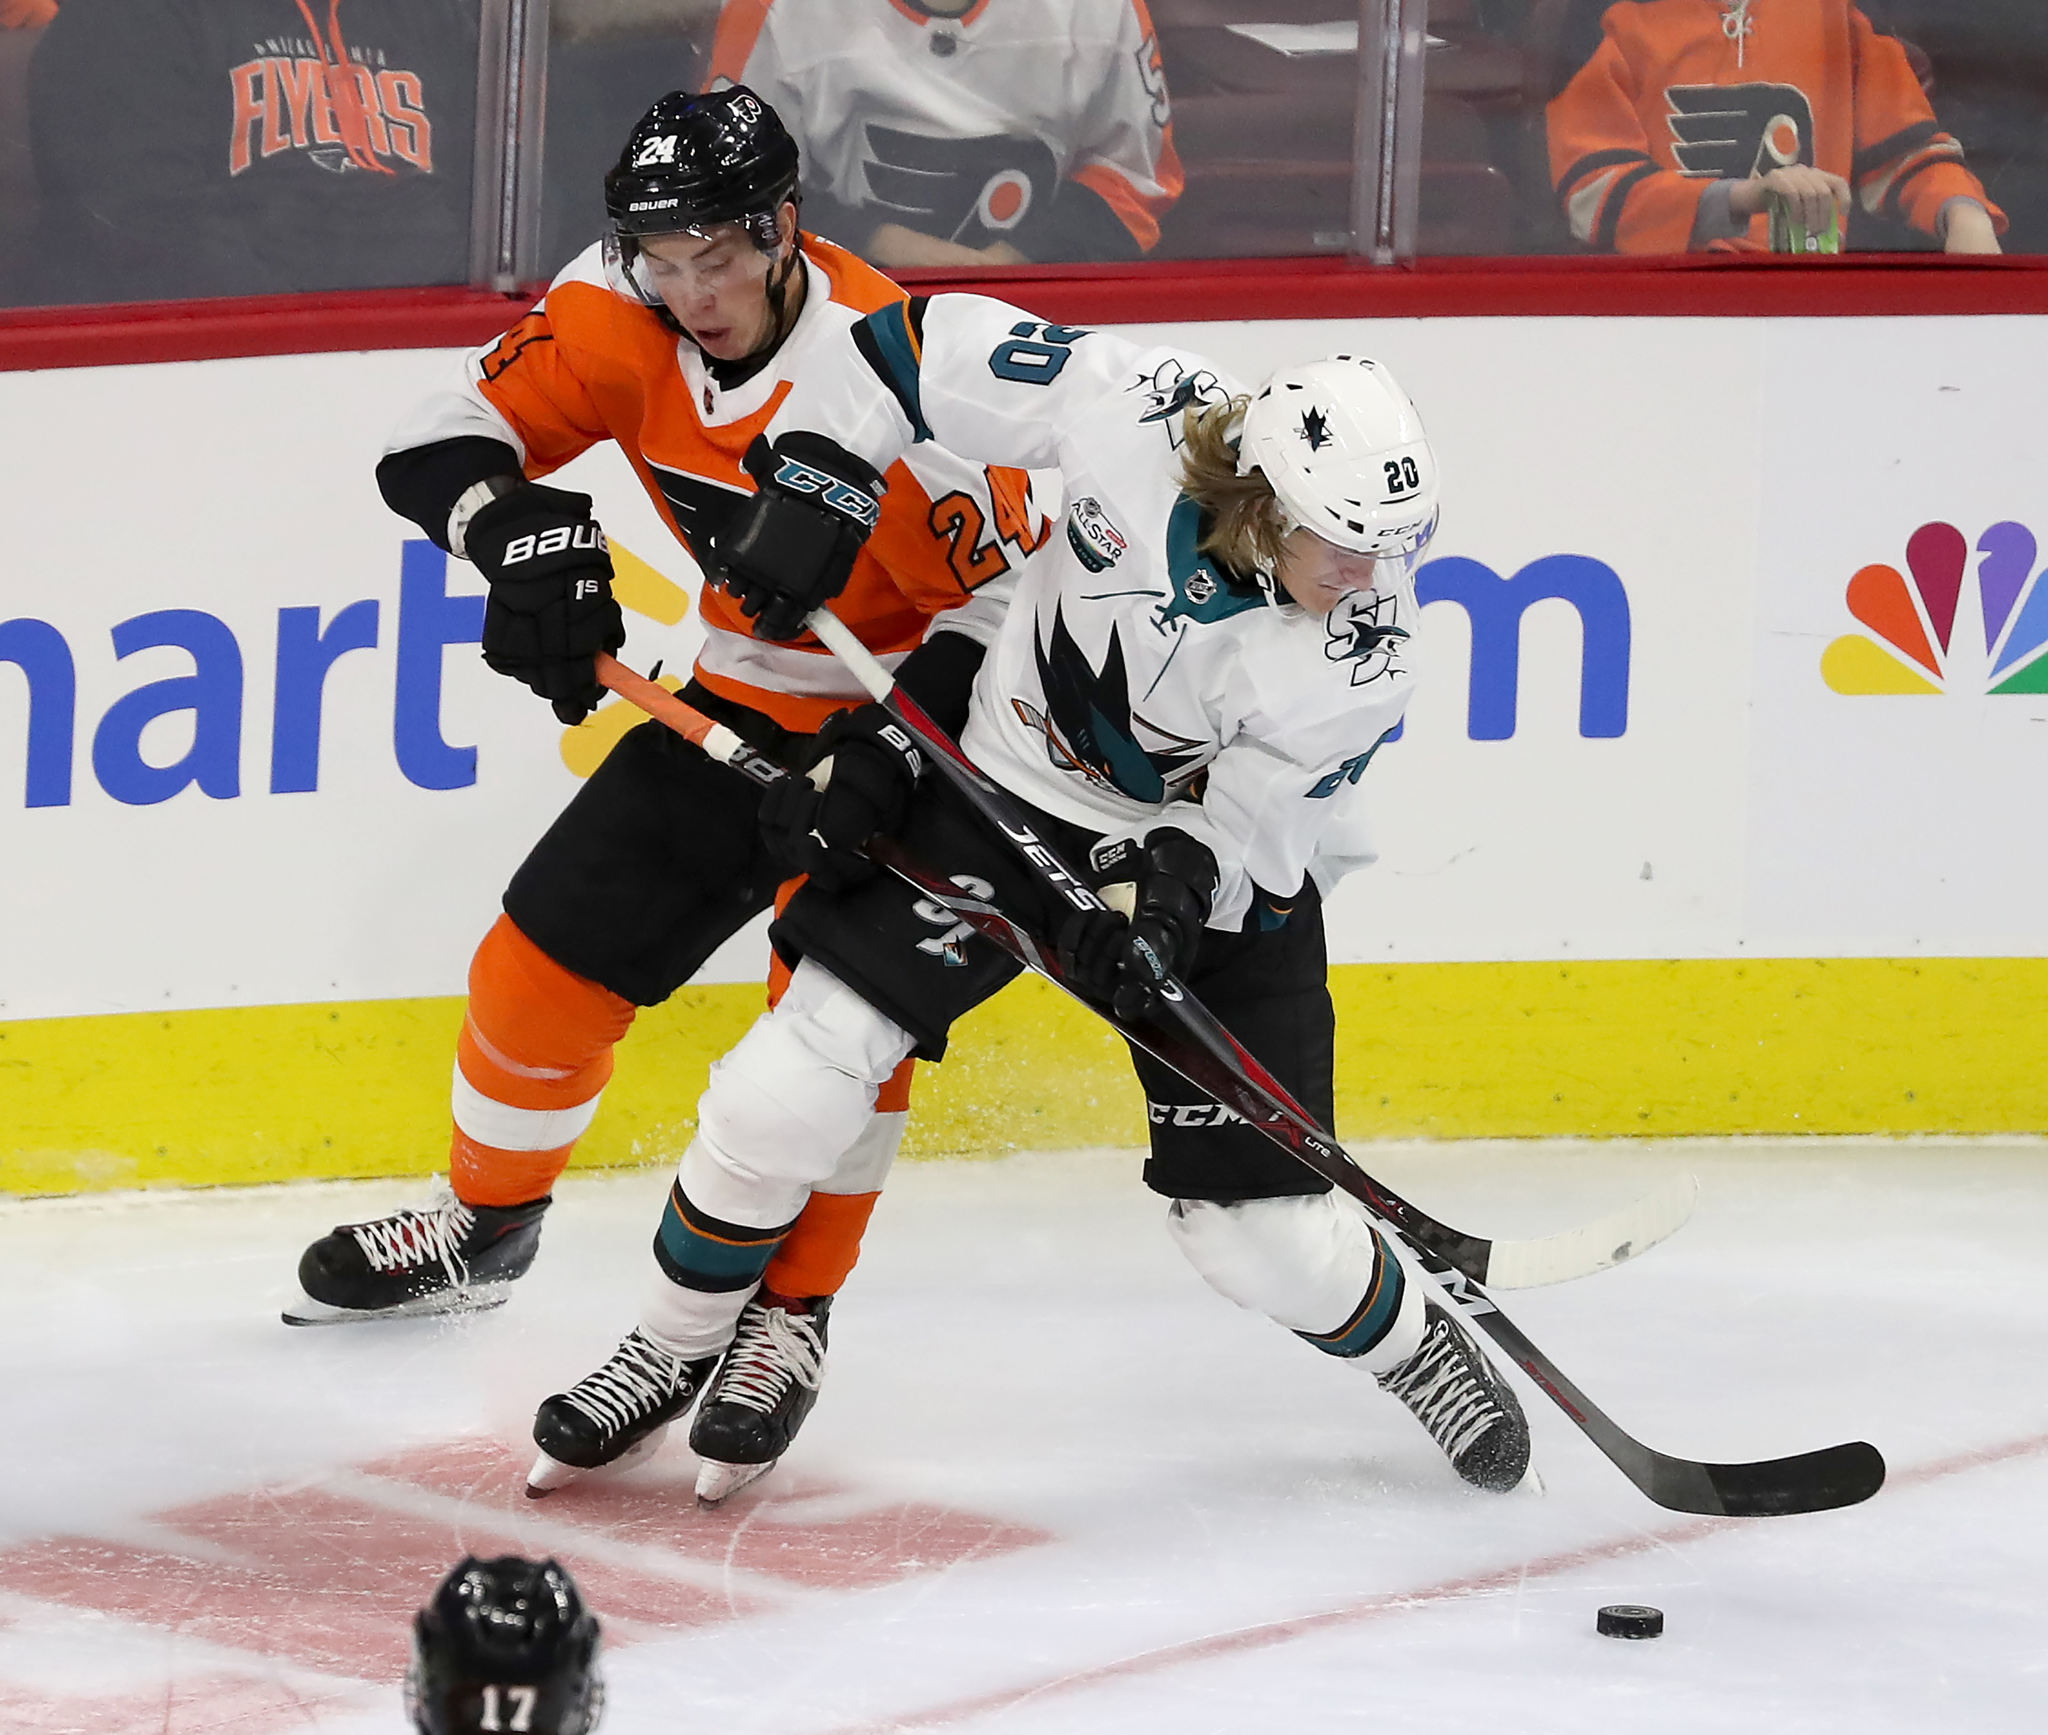 Mikhail Vorobyev, left, of the Flyers and Marcus Sorensen of the Sharks battle for the puck  in the 1st period. The Flyers take the ice in their home opener against the Sharks on Oct. 9, 2018.